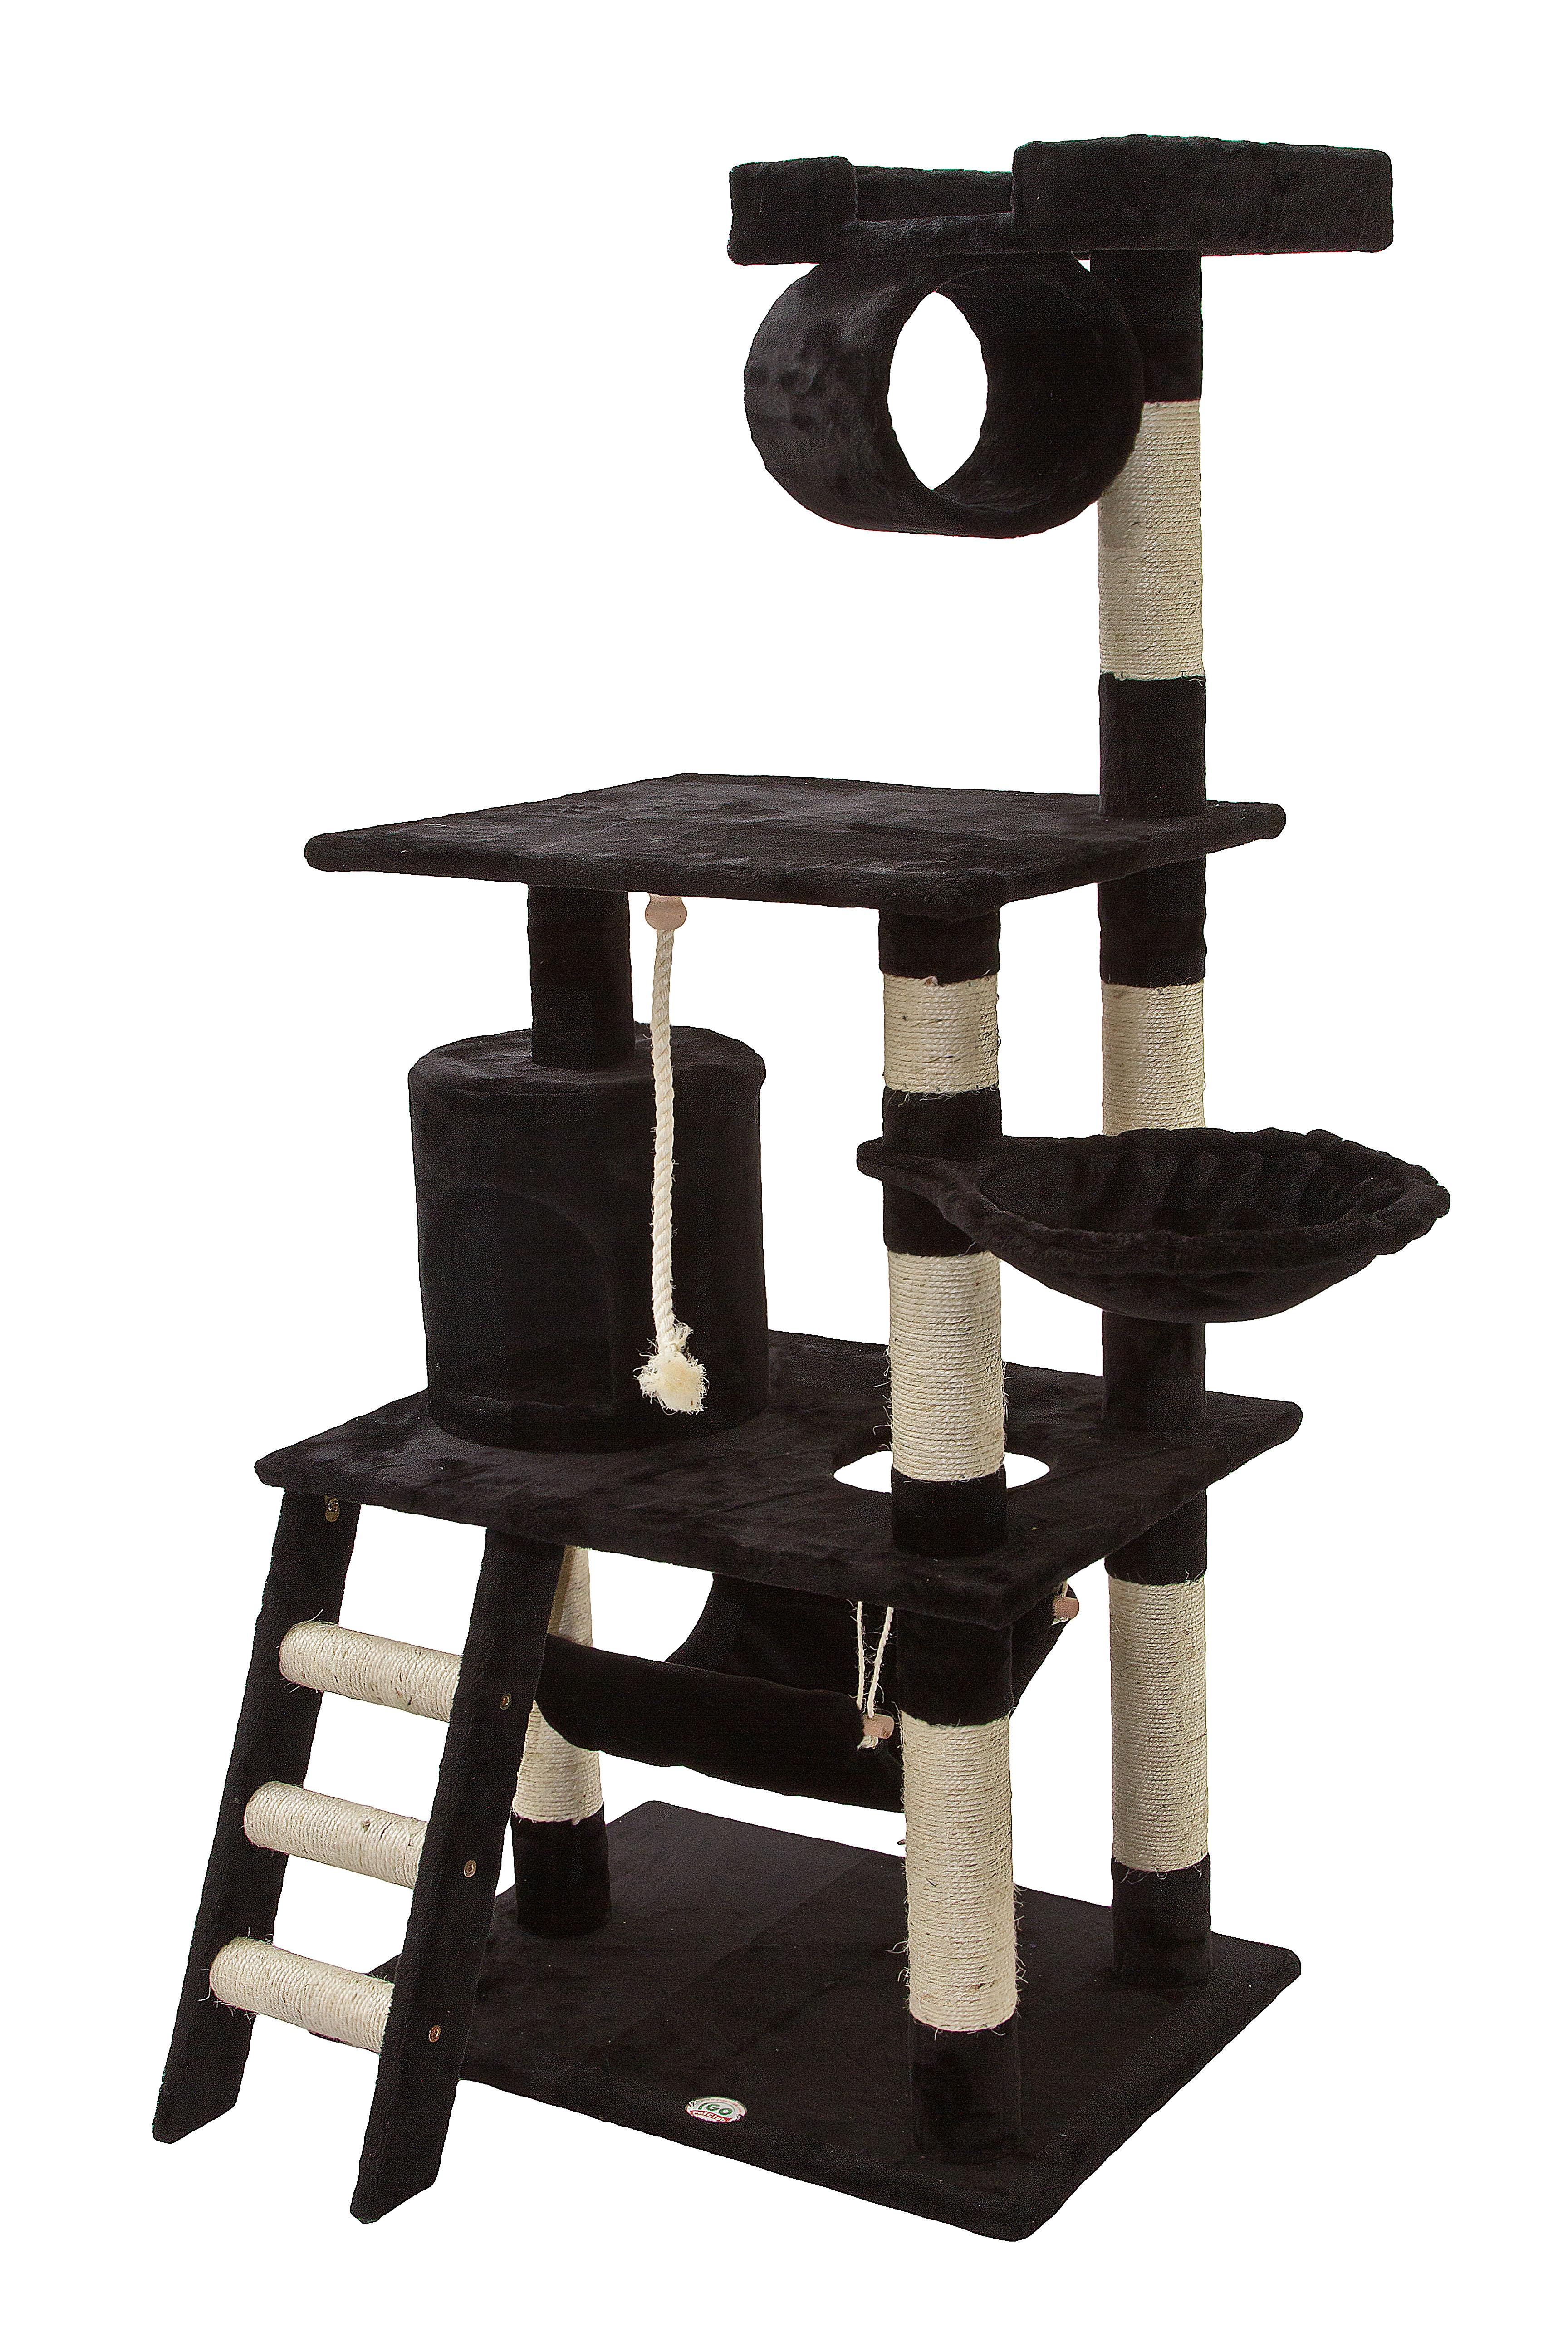 amazoncom  go pet club inch cat tree black  pet supplies - go pet club cat tree furniture  in high